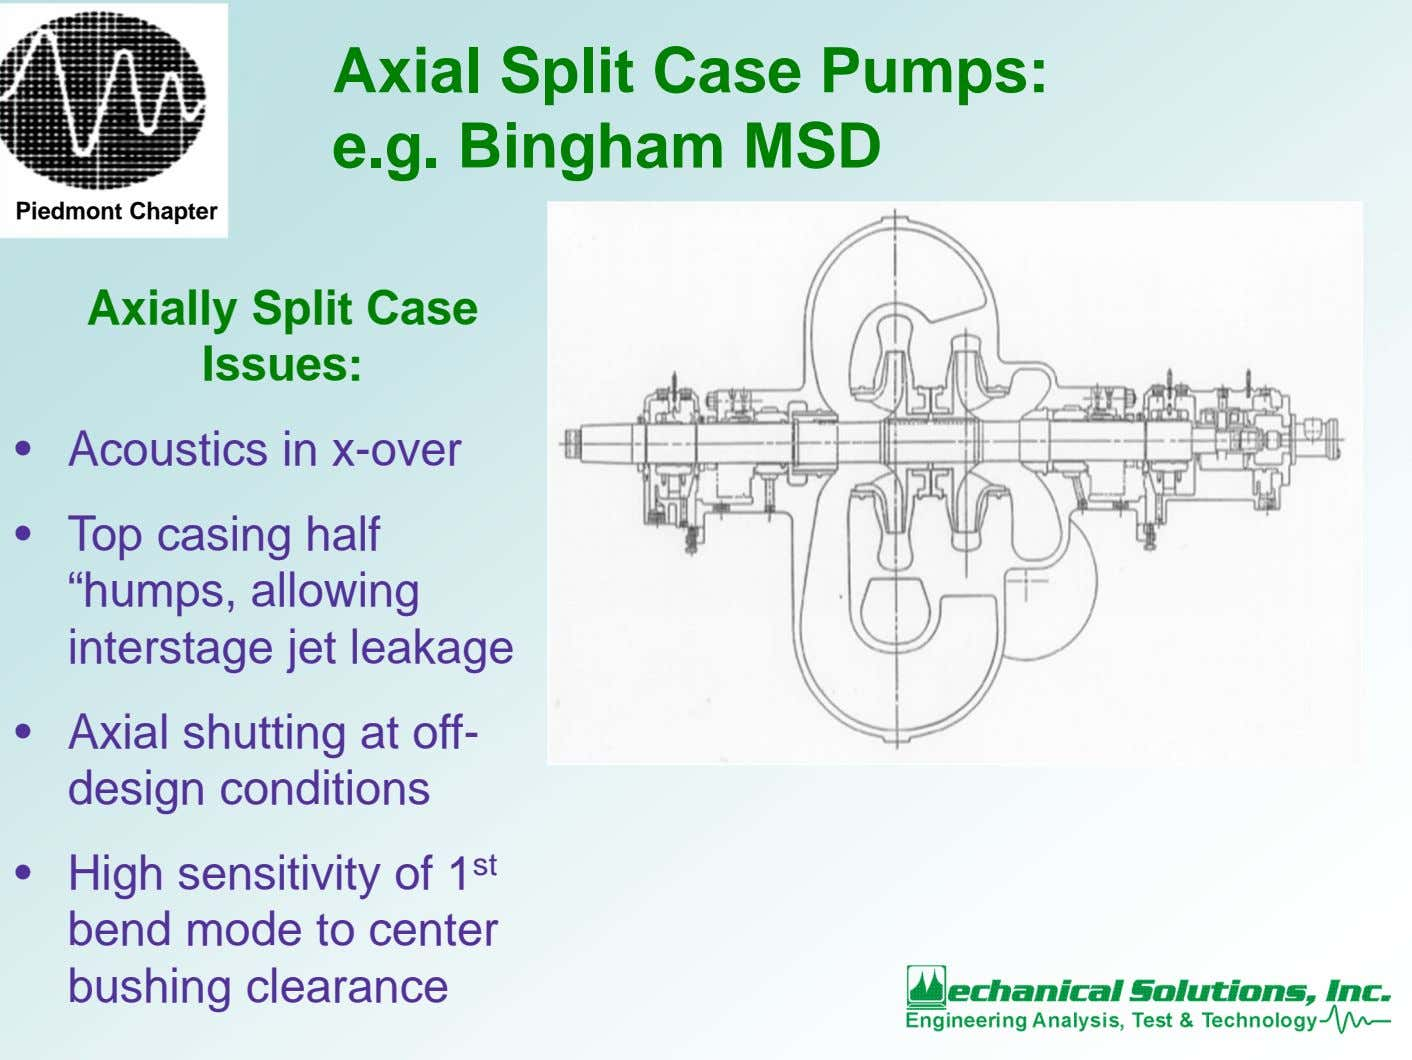 Axial Split Case Pumps: e.g. Bingham MSD Piedmont Chapter Axially Split Case Issues: • Acoustics